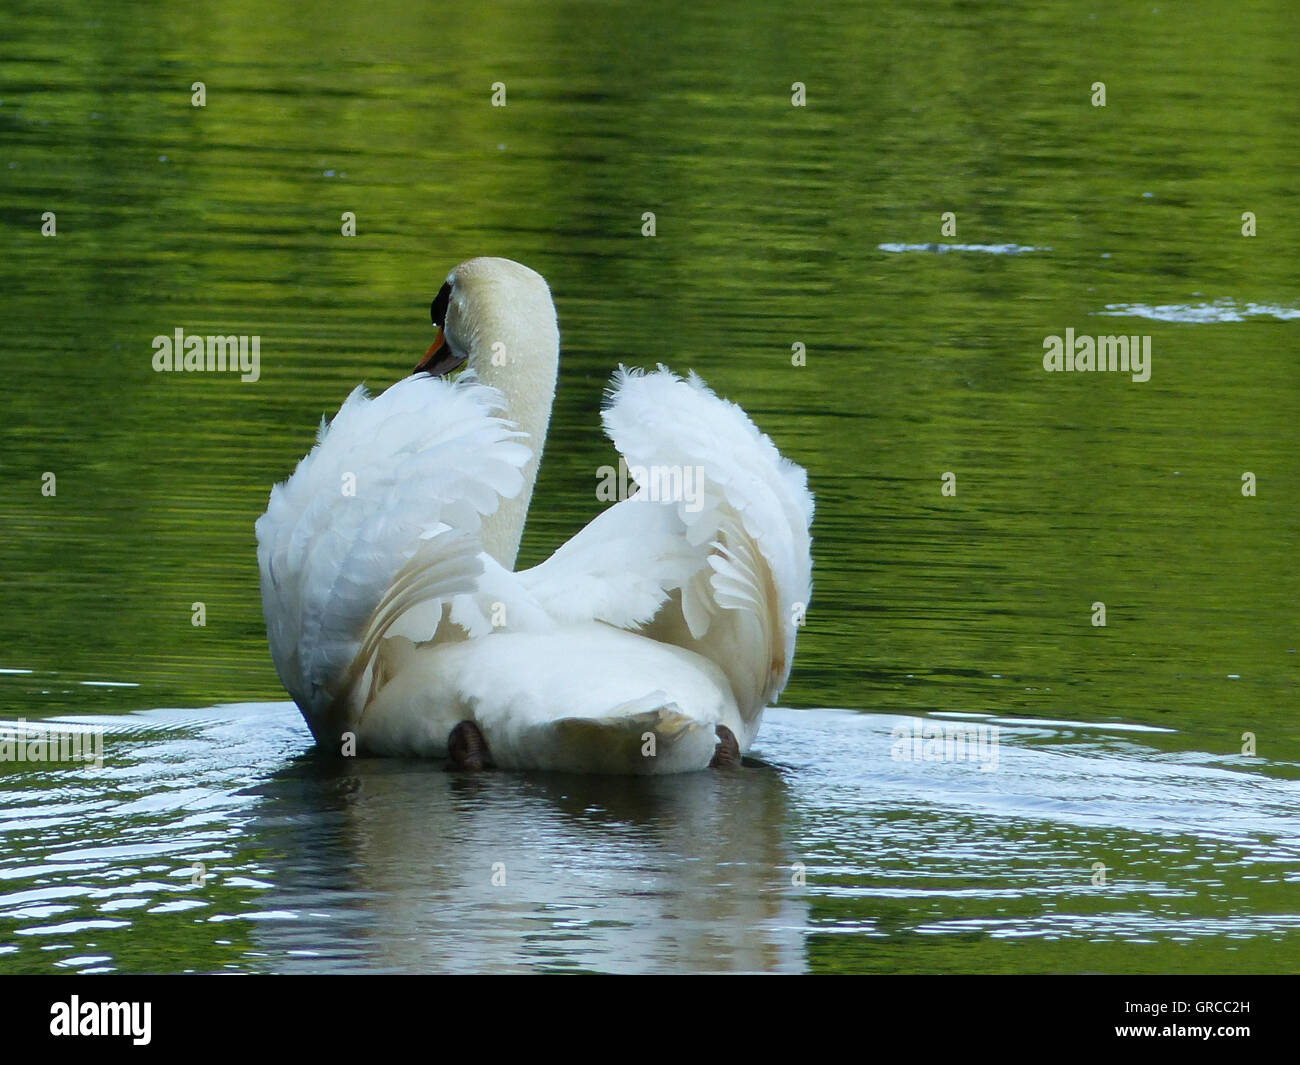 Swan Fluffs Up Its Feathers And Swims - Stock Image